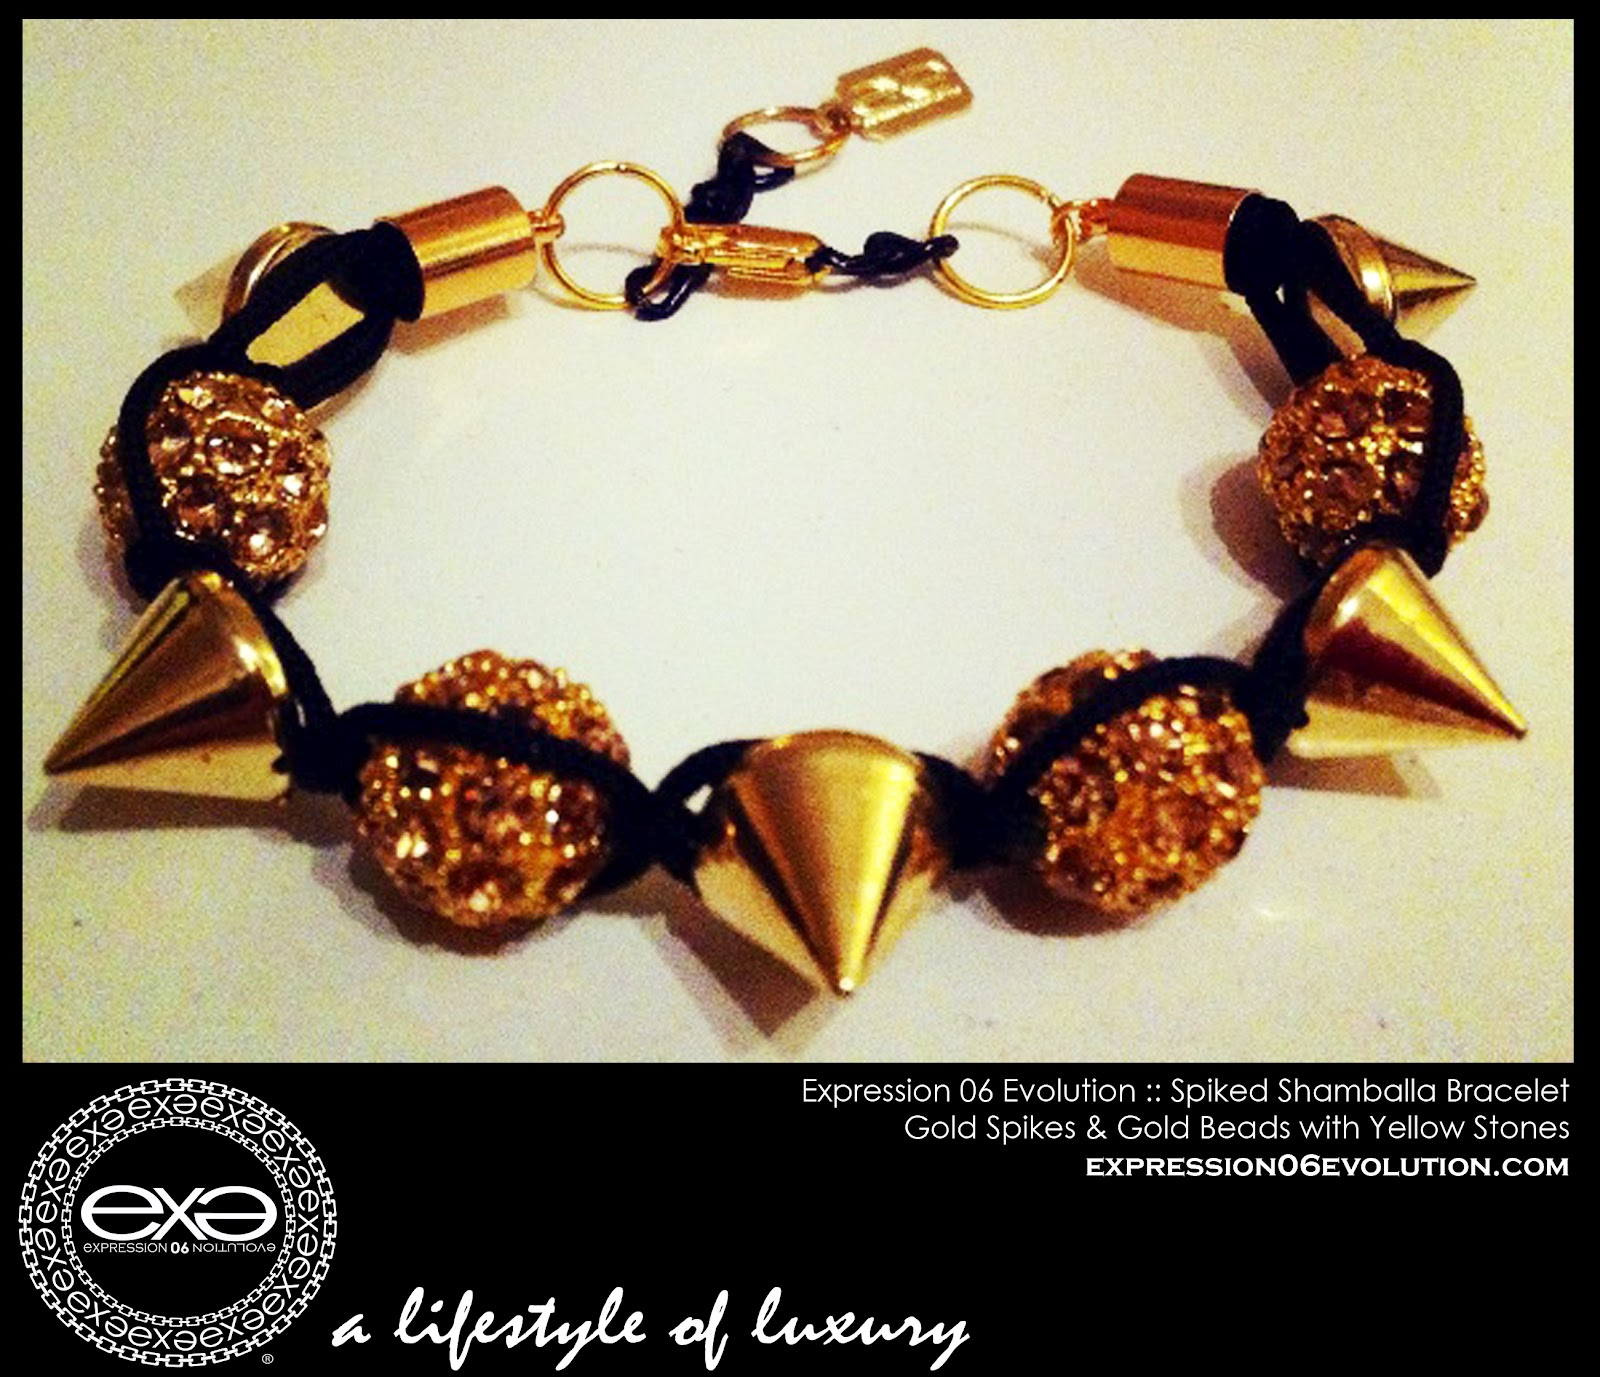 http://3.bp.blogspot.com/-vWvSOdgpv8g/UCY4ibGh5_I/AAAAAAAAB2s/pMrITH37BUI/s1600/EXPRESSION+06+EVOLUTION+-+SPIKED+SHAMBALLA+BRACLET+-+GOLD+SPIKES+WITH+YELLOW+STONES+-+EXPRESSIVE+CLOTHING+LLC+-+DUSHON+EX+DANIELS+-+ALEXIS+BELSKI+.jpg